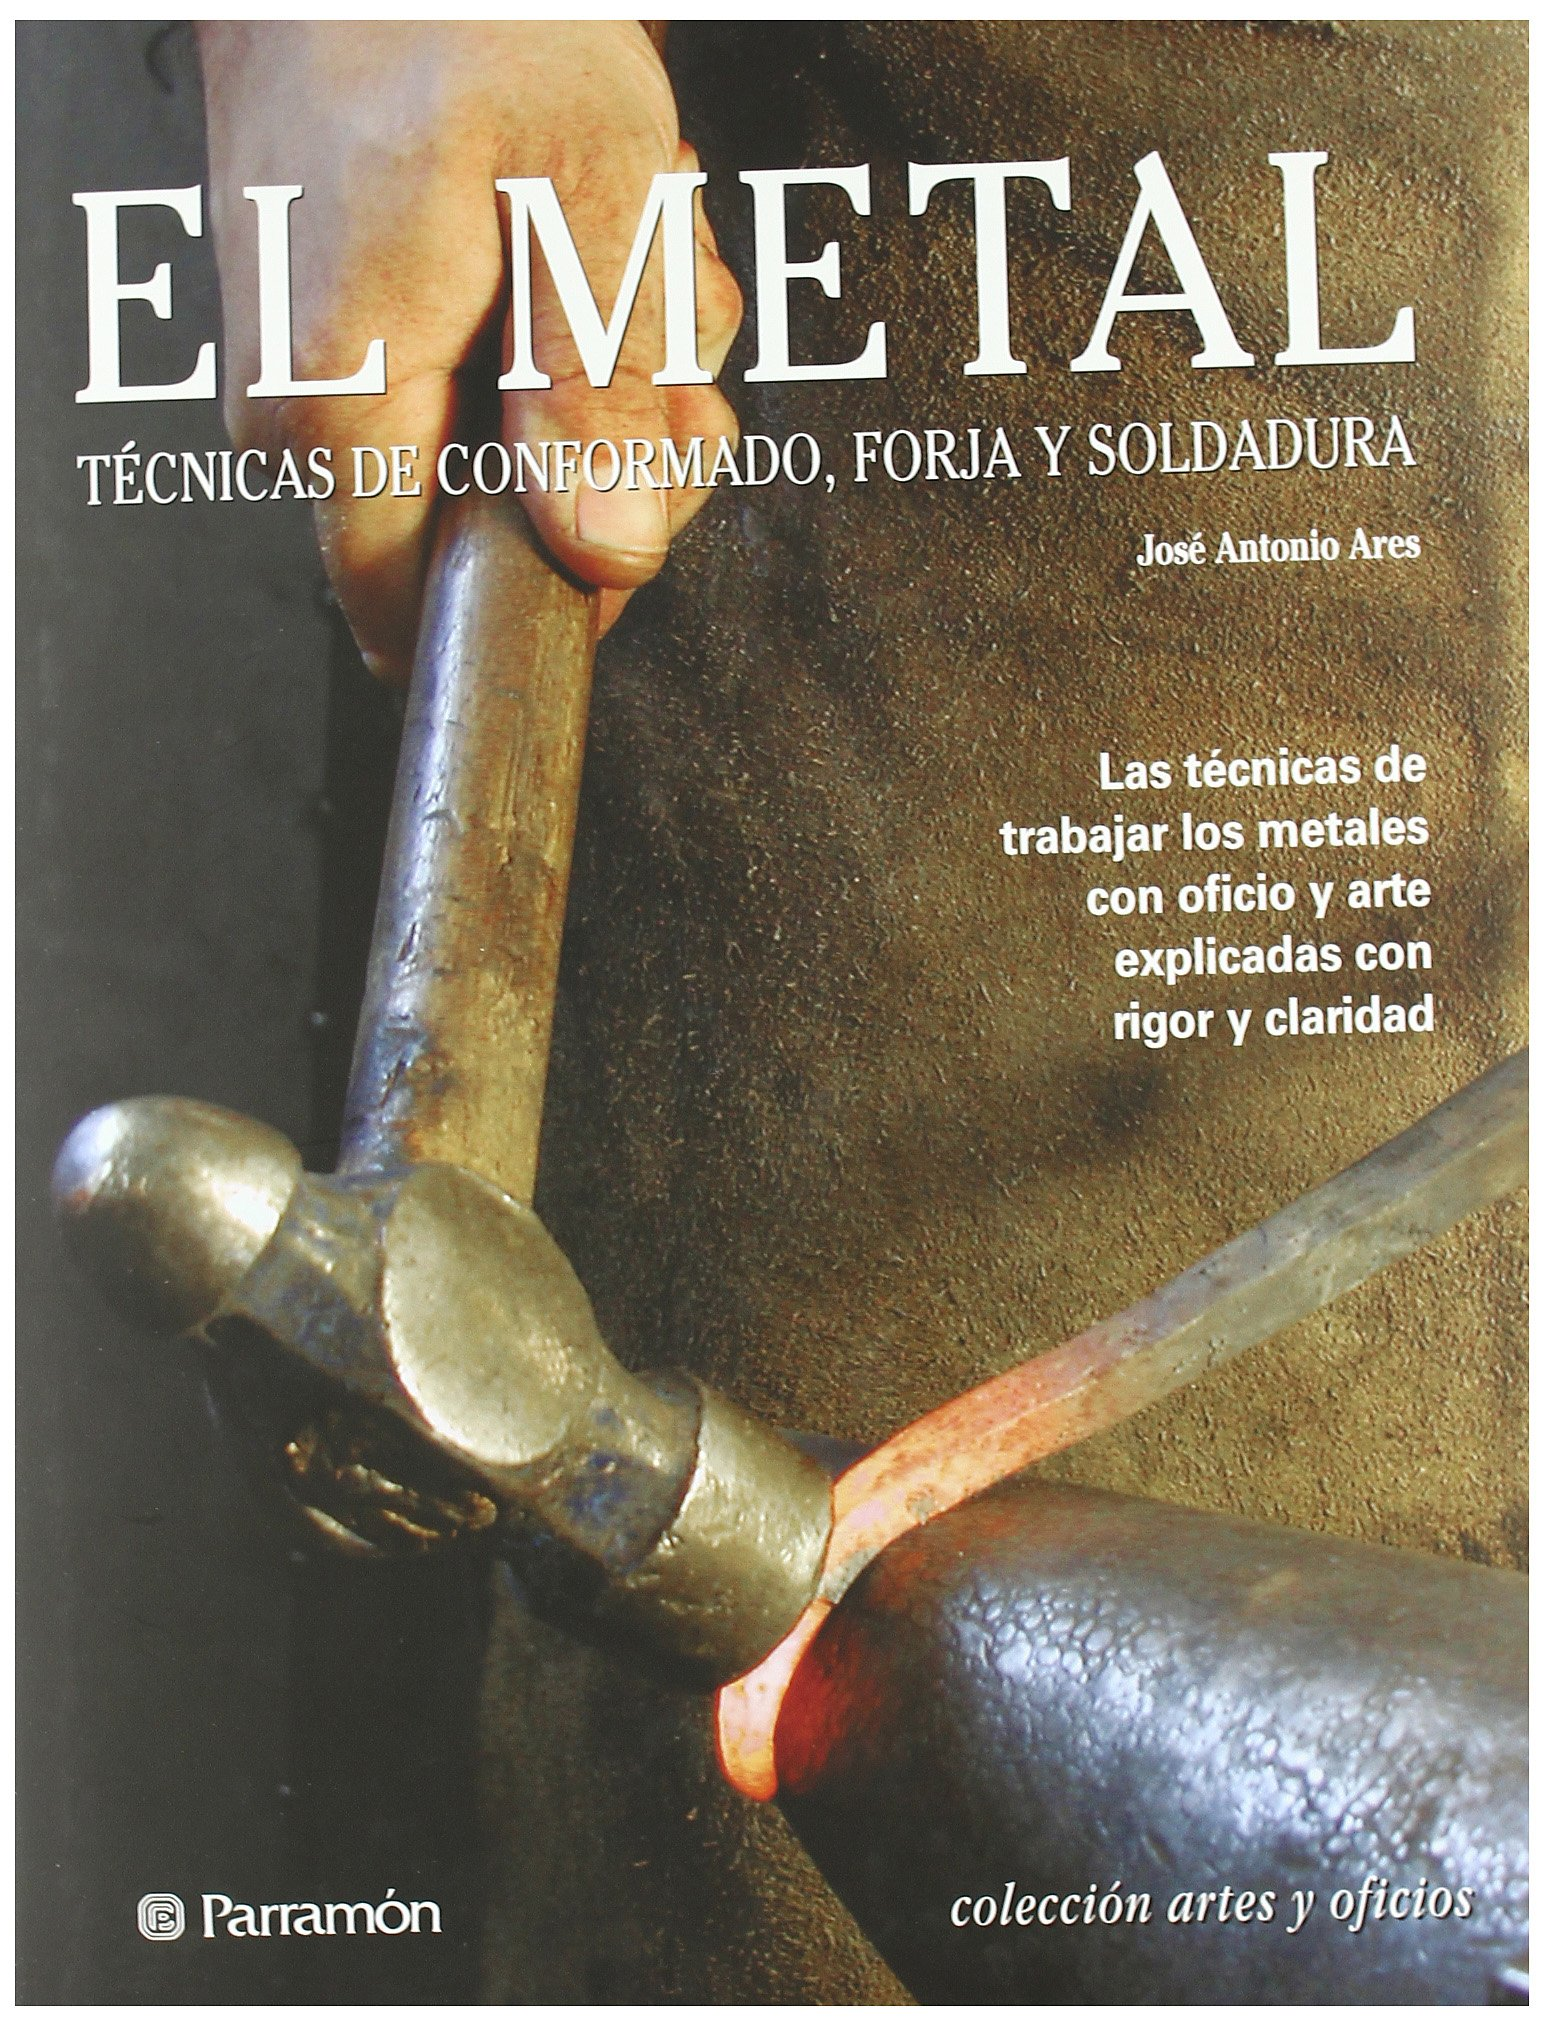 El metal/The metal (Spanish Edition) (Spanish) Hardcover – March 1, 2010